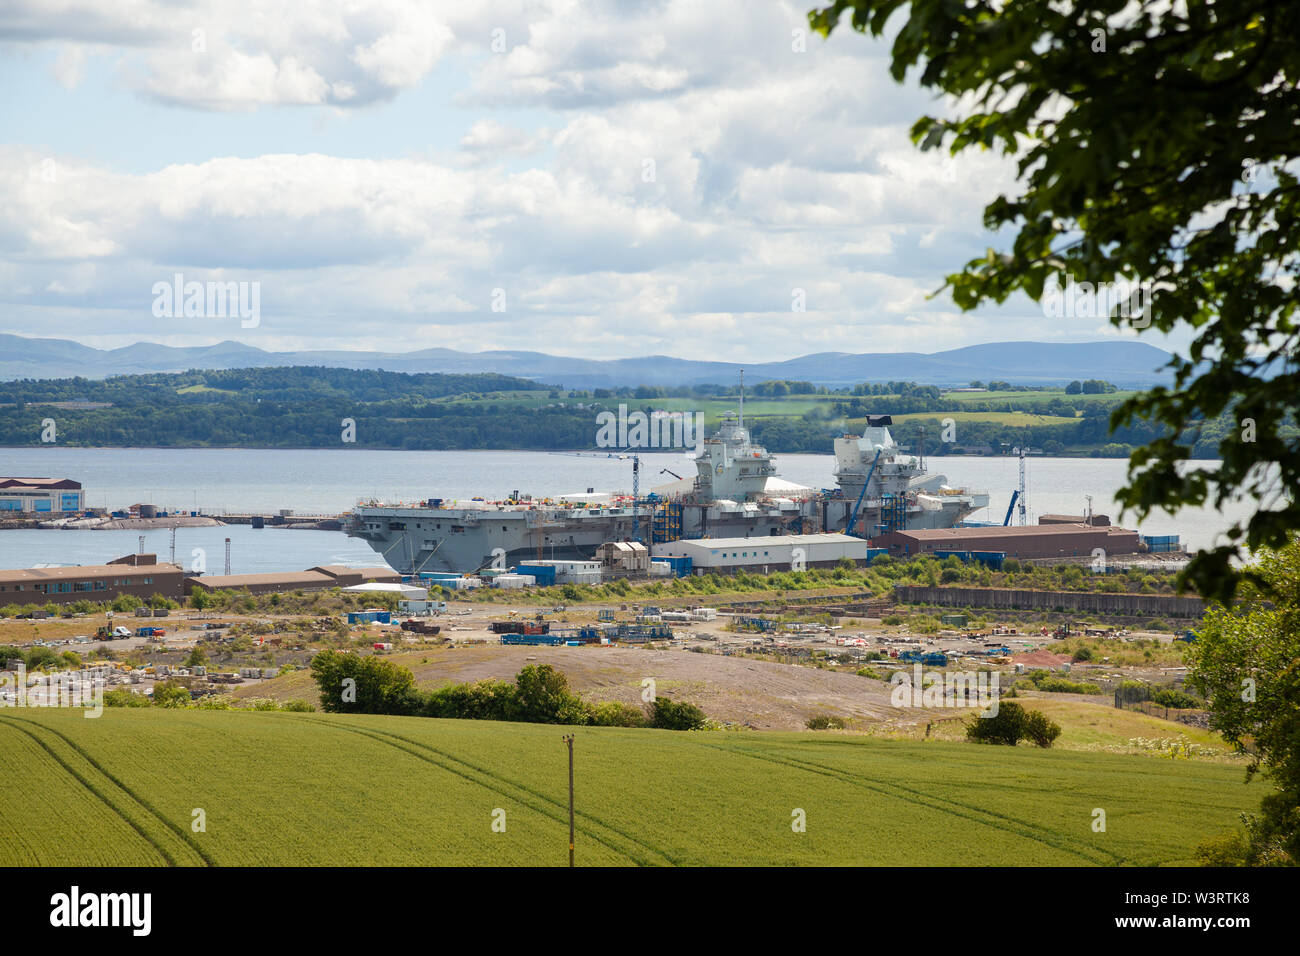 Aircraft carrier HMS Prince of Wales being built at Rosyth dockyard Fife Scotland Stock Photo